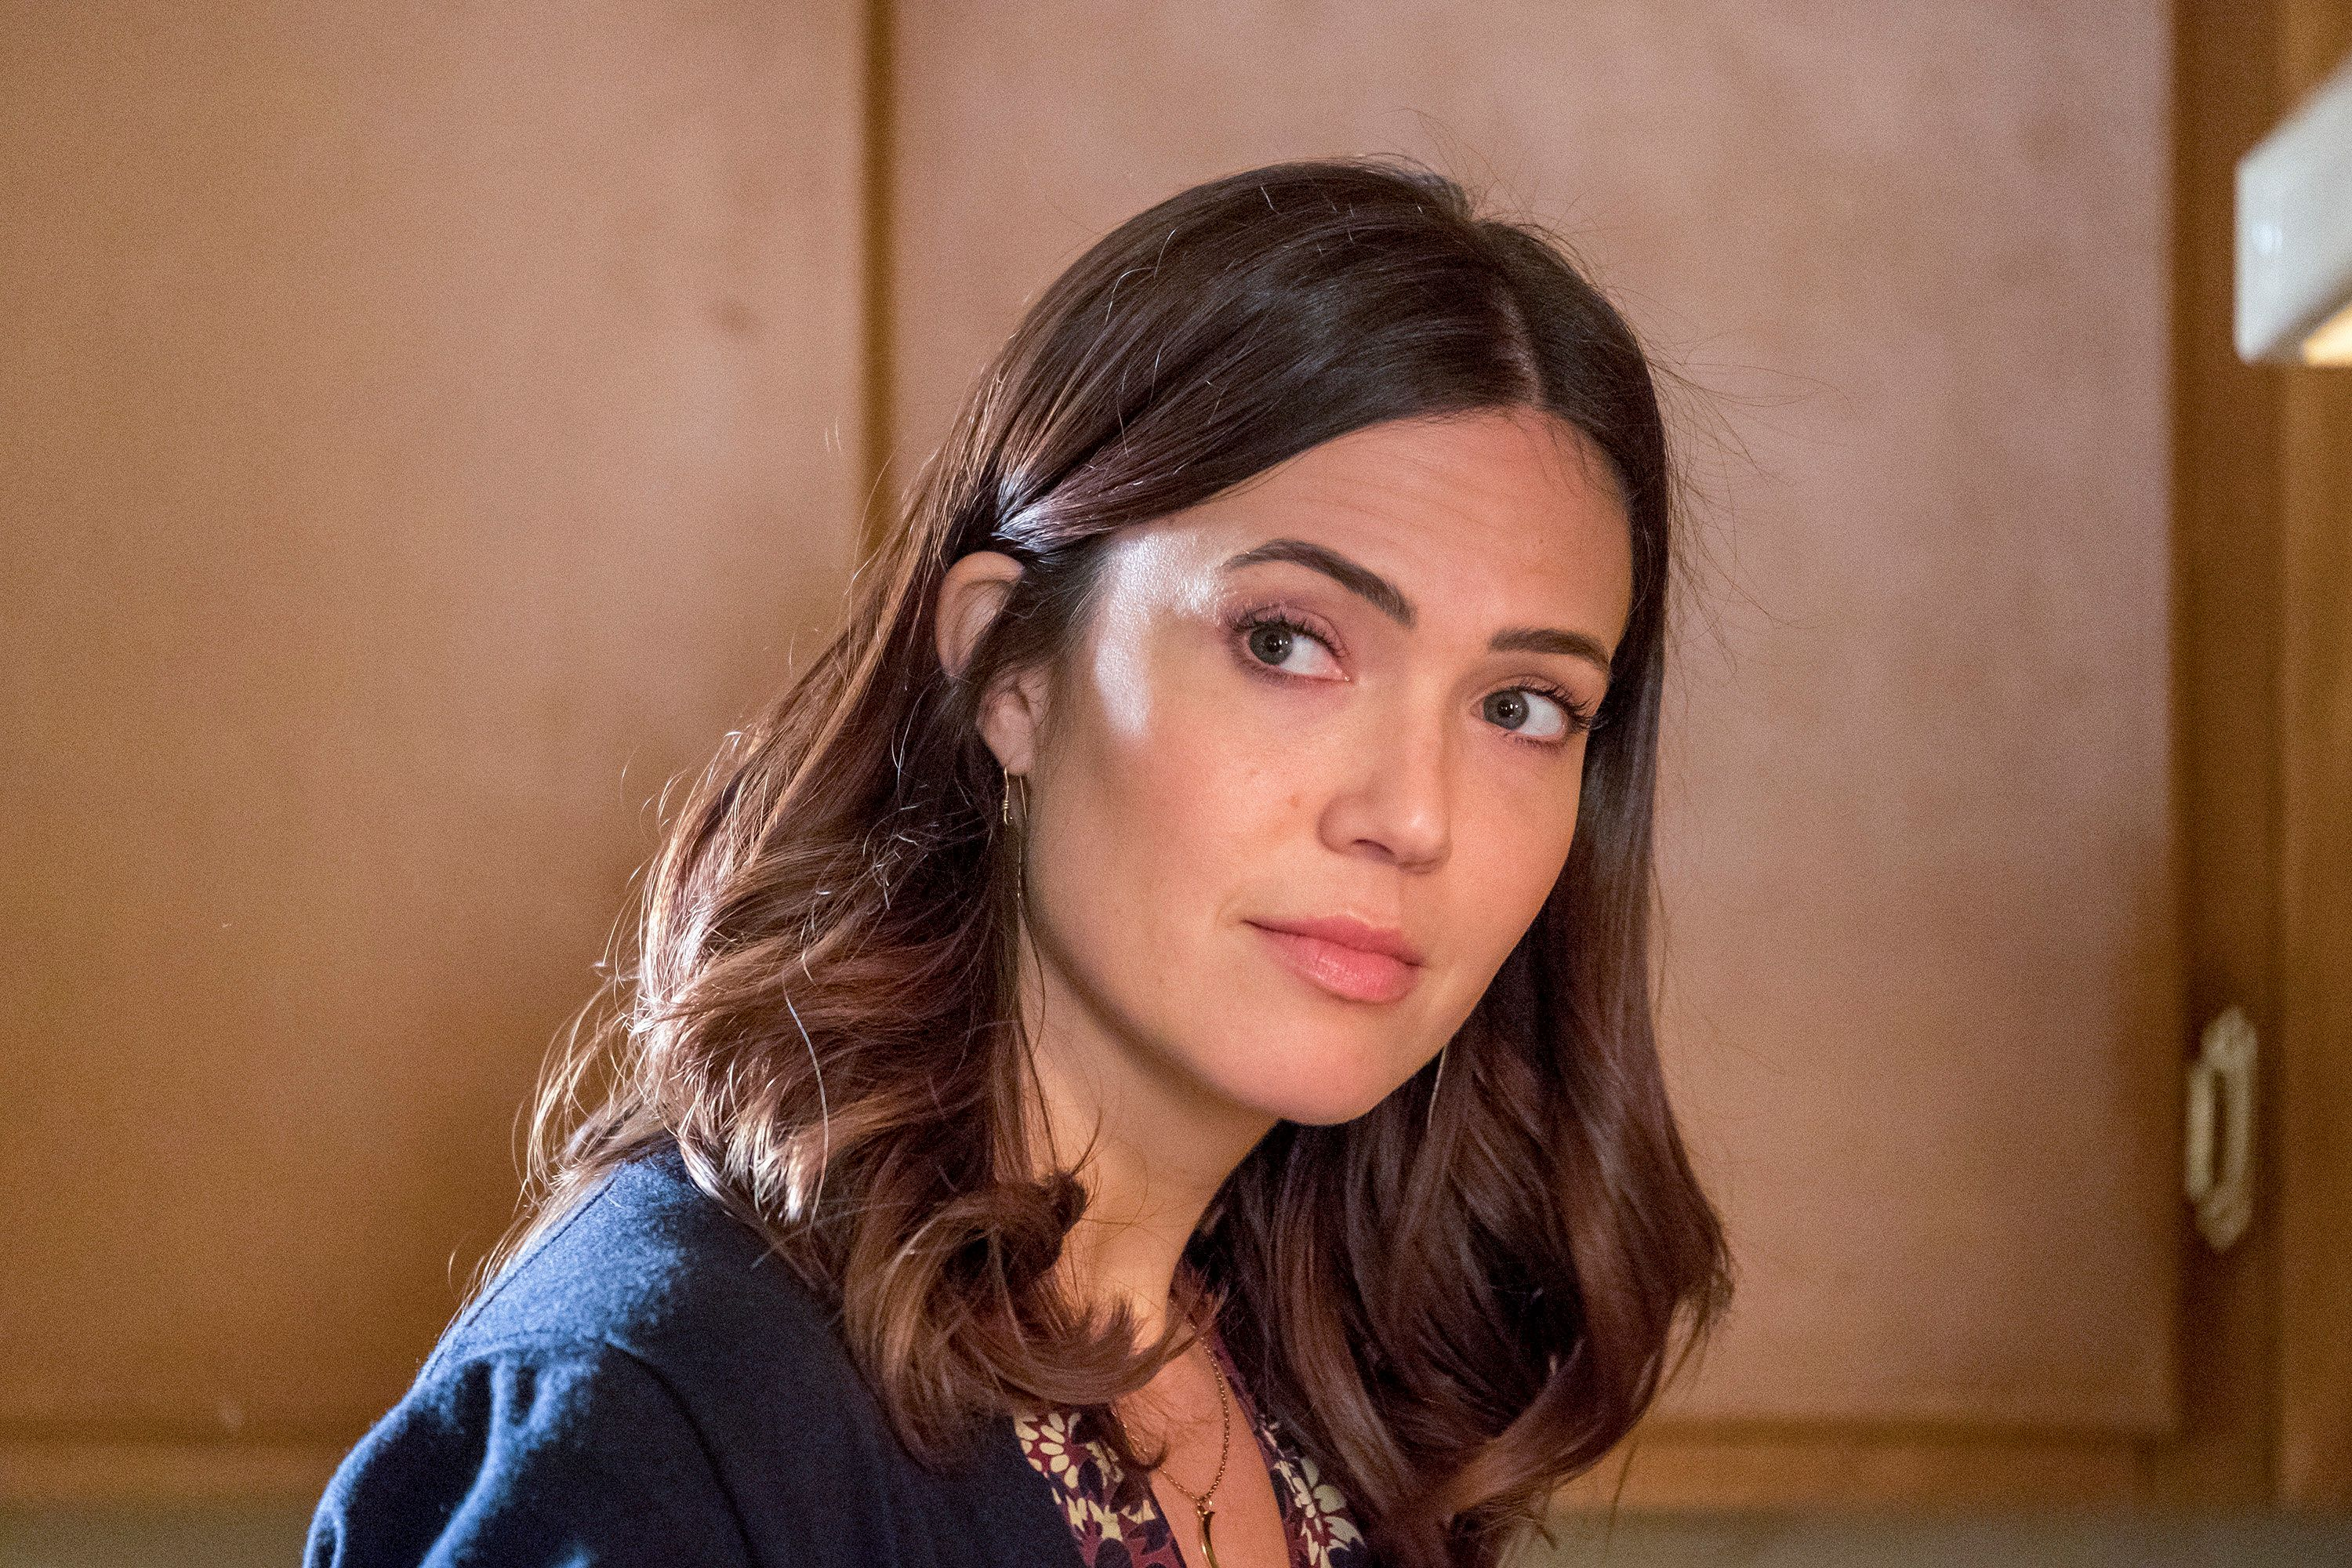 """Moore, who plays matriarch Rebecca Pearson on """"This Is Us,"""" said she hopes the show shines a light on mental health issues."""